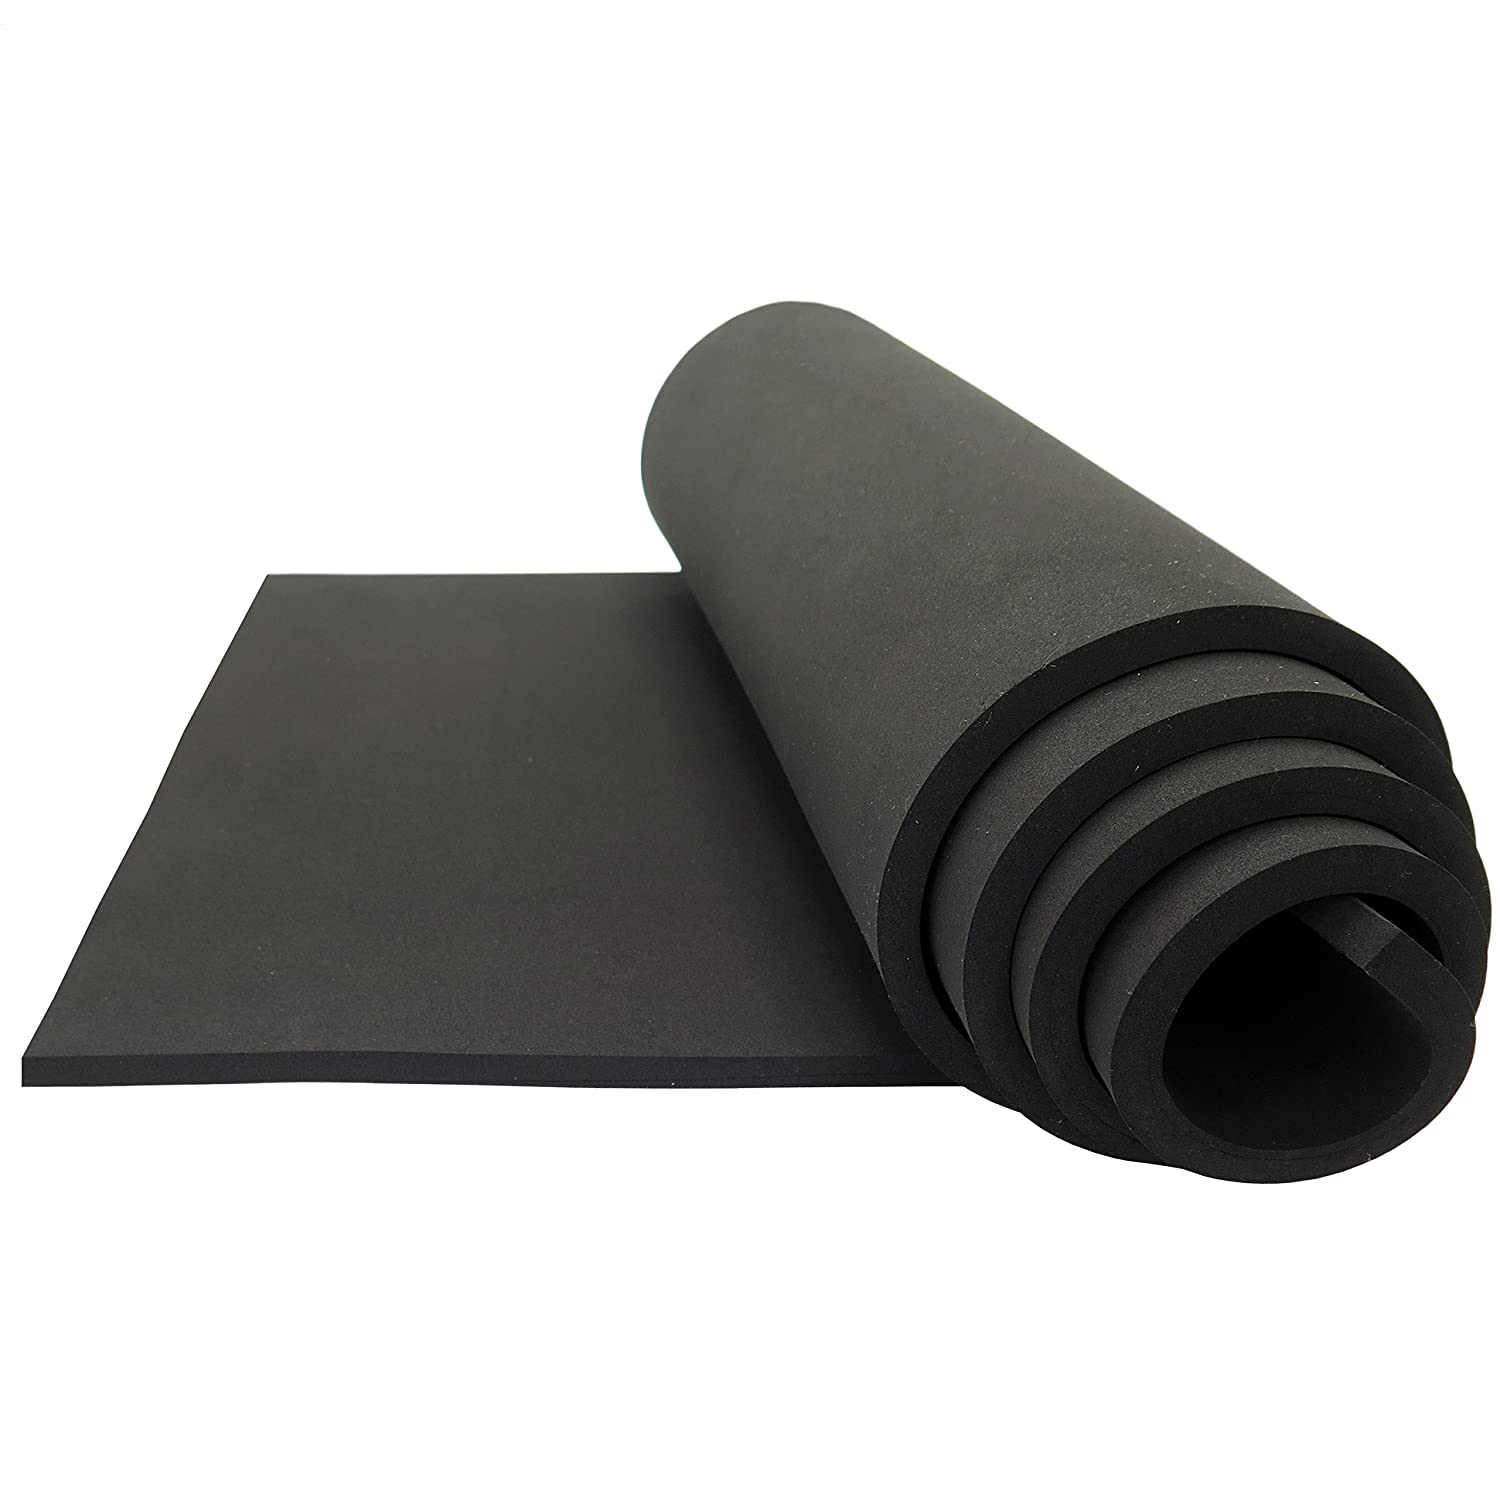 Neoprene Sponge Foam Rubber Sheet Roll - 15in x 60in (1/8